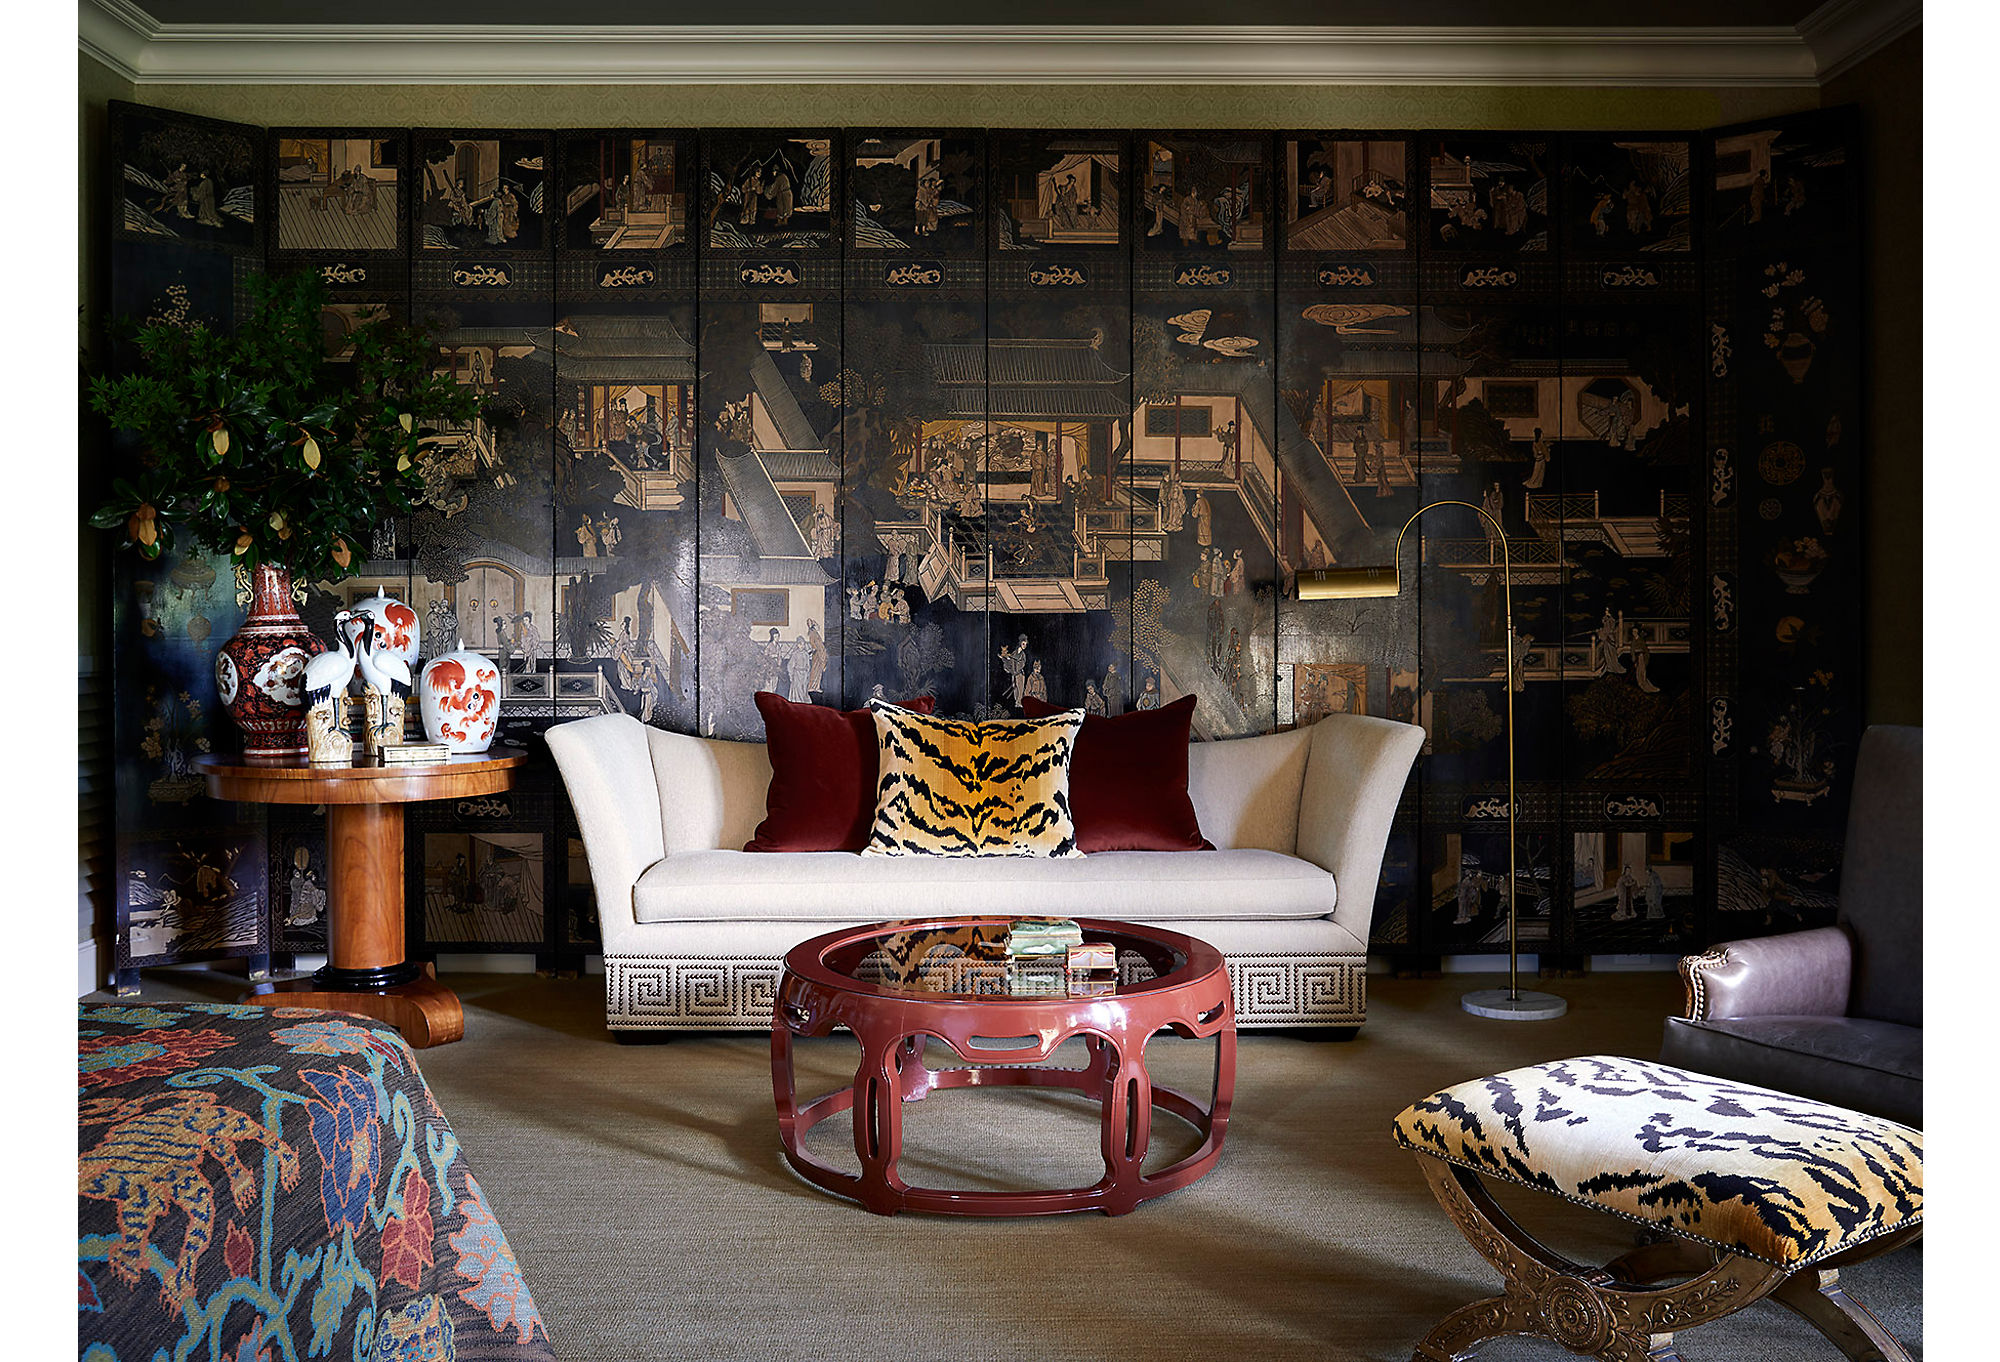 No master suite is complete without a sitting area. Here, Dennis covered the entire wall with a12-panel chinoiserie screen. He pulls in more traditional elements with Greek key detailing on the sofa.